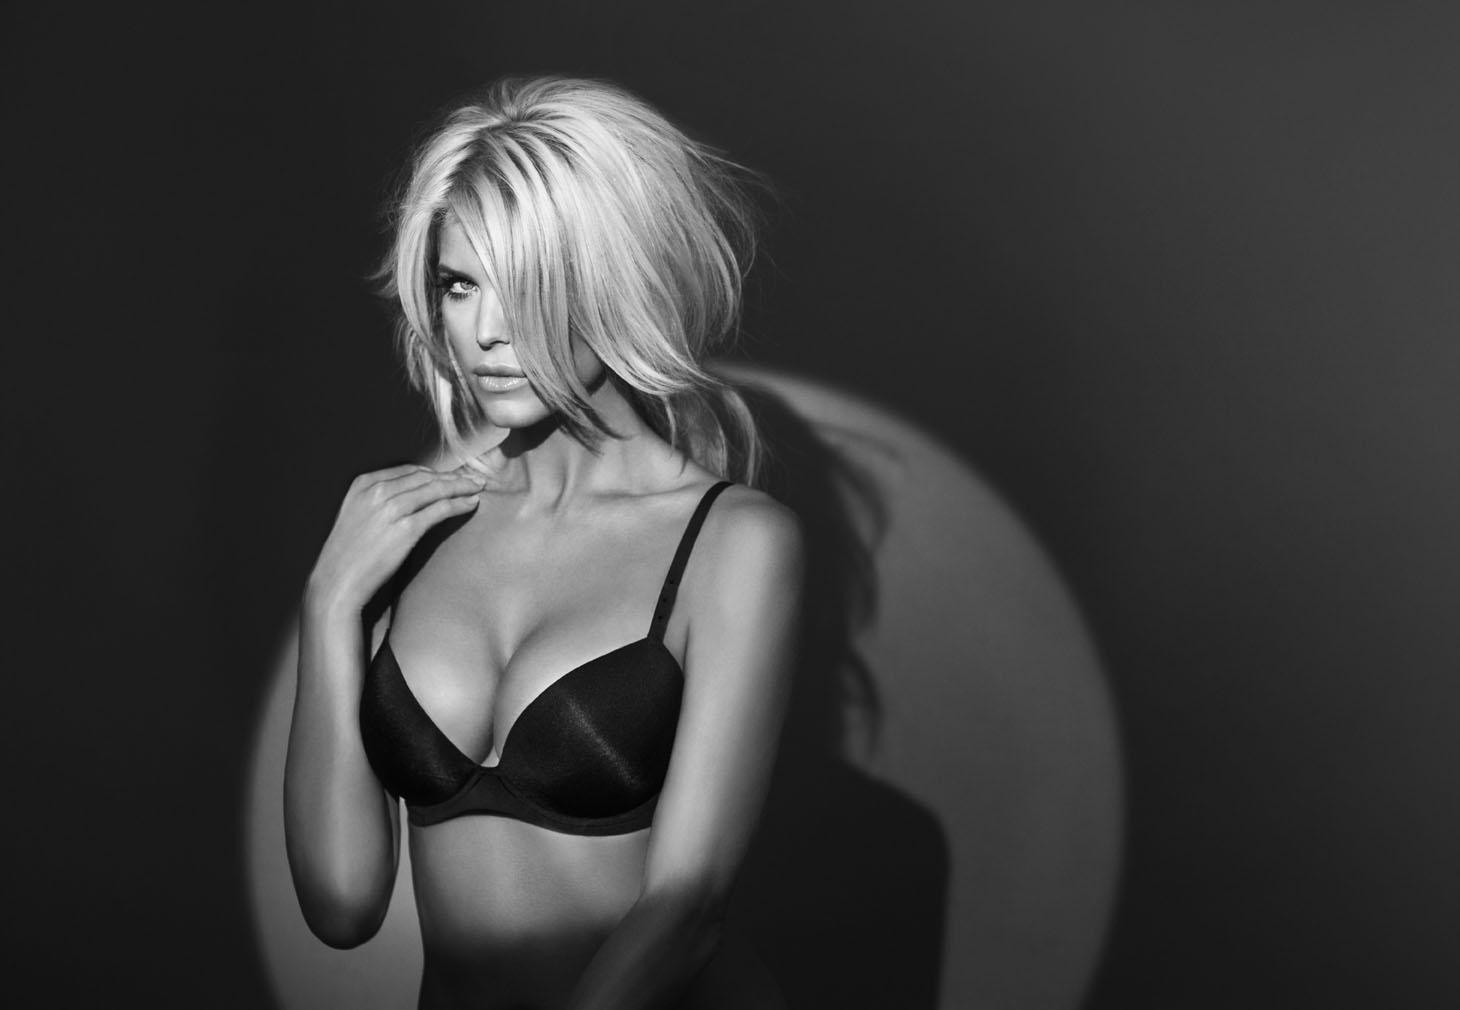 Very Victoria Silvstedt Collection - Creative Direction - Imagery - Photography by Signe Vilstrup